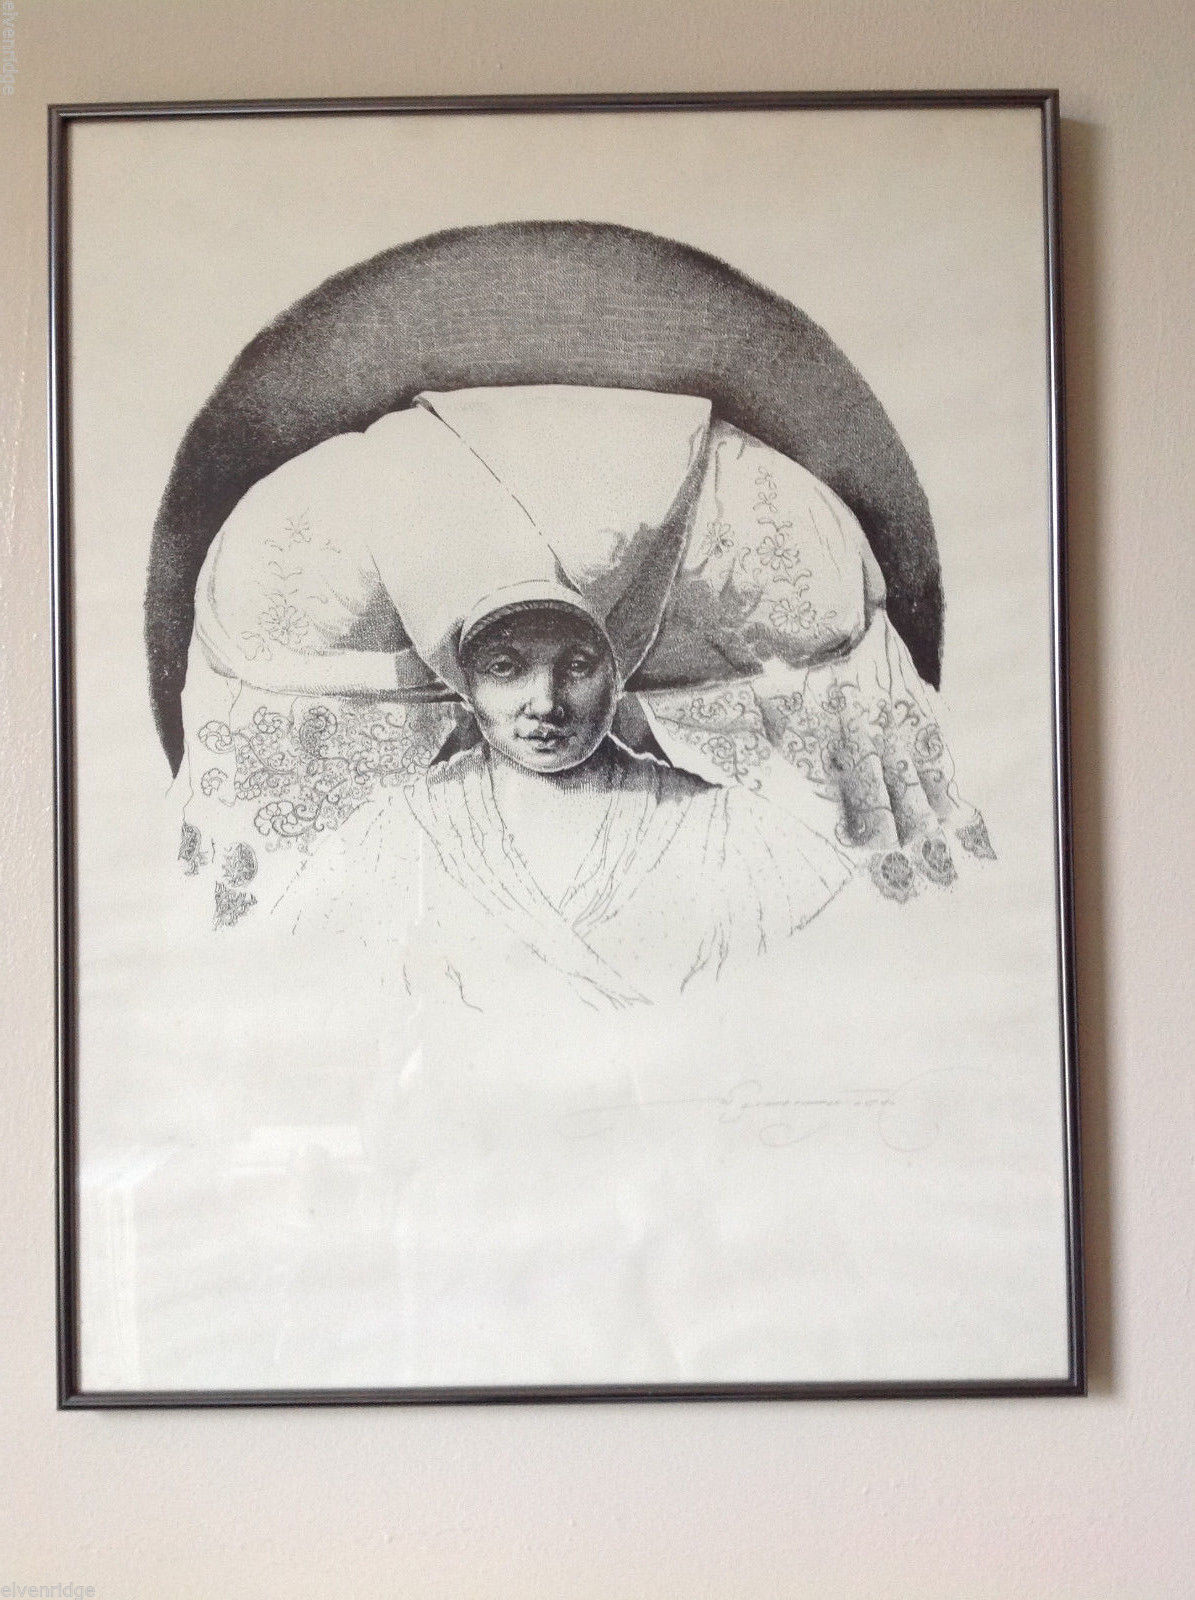 Monochrome Portrait of Woman in Headdress Signed by Original Artist Black White